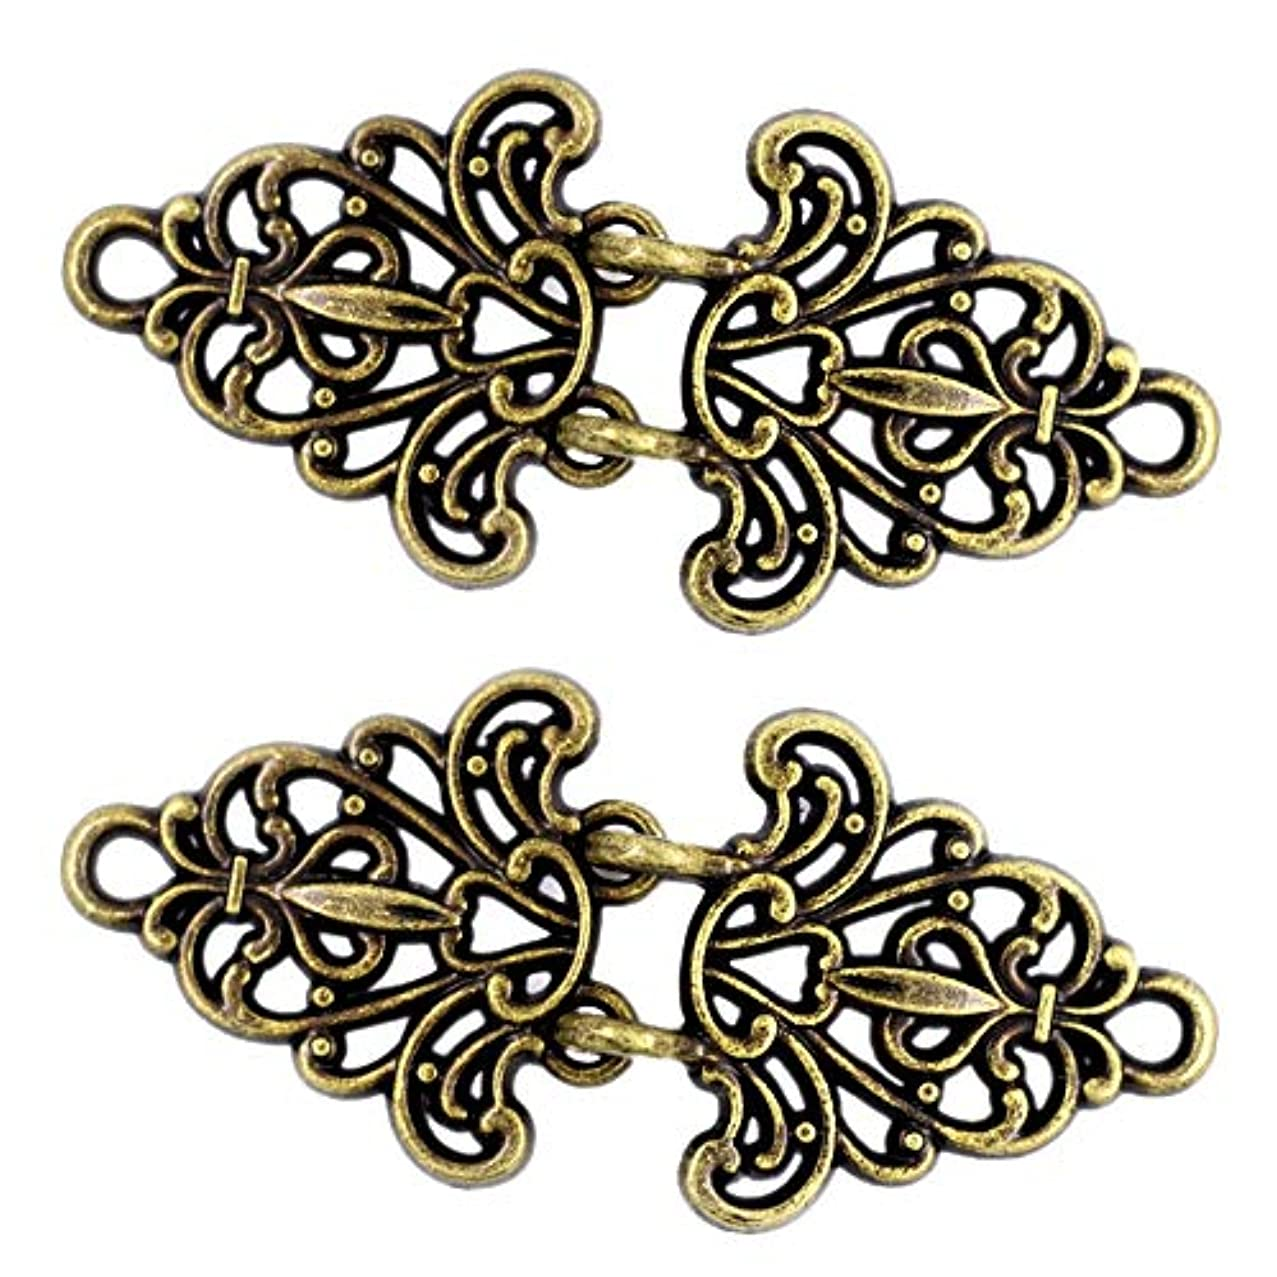 Bezelry 4 Pairs Filigree Trivet Cape or Cloak Clasp Fasteners. 64mm x 29mm Fastened. Sew On Hooks and Eyes Cardigan Clip (Antique Brass)